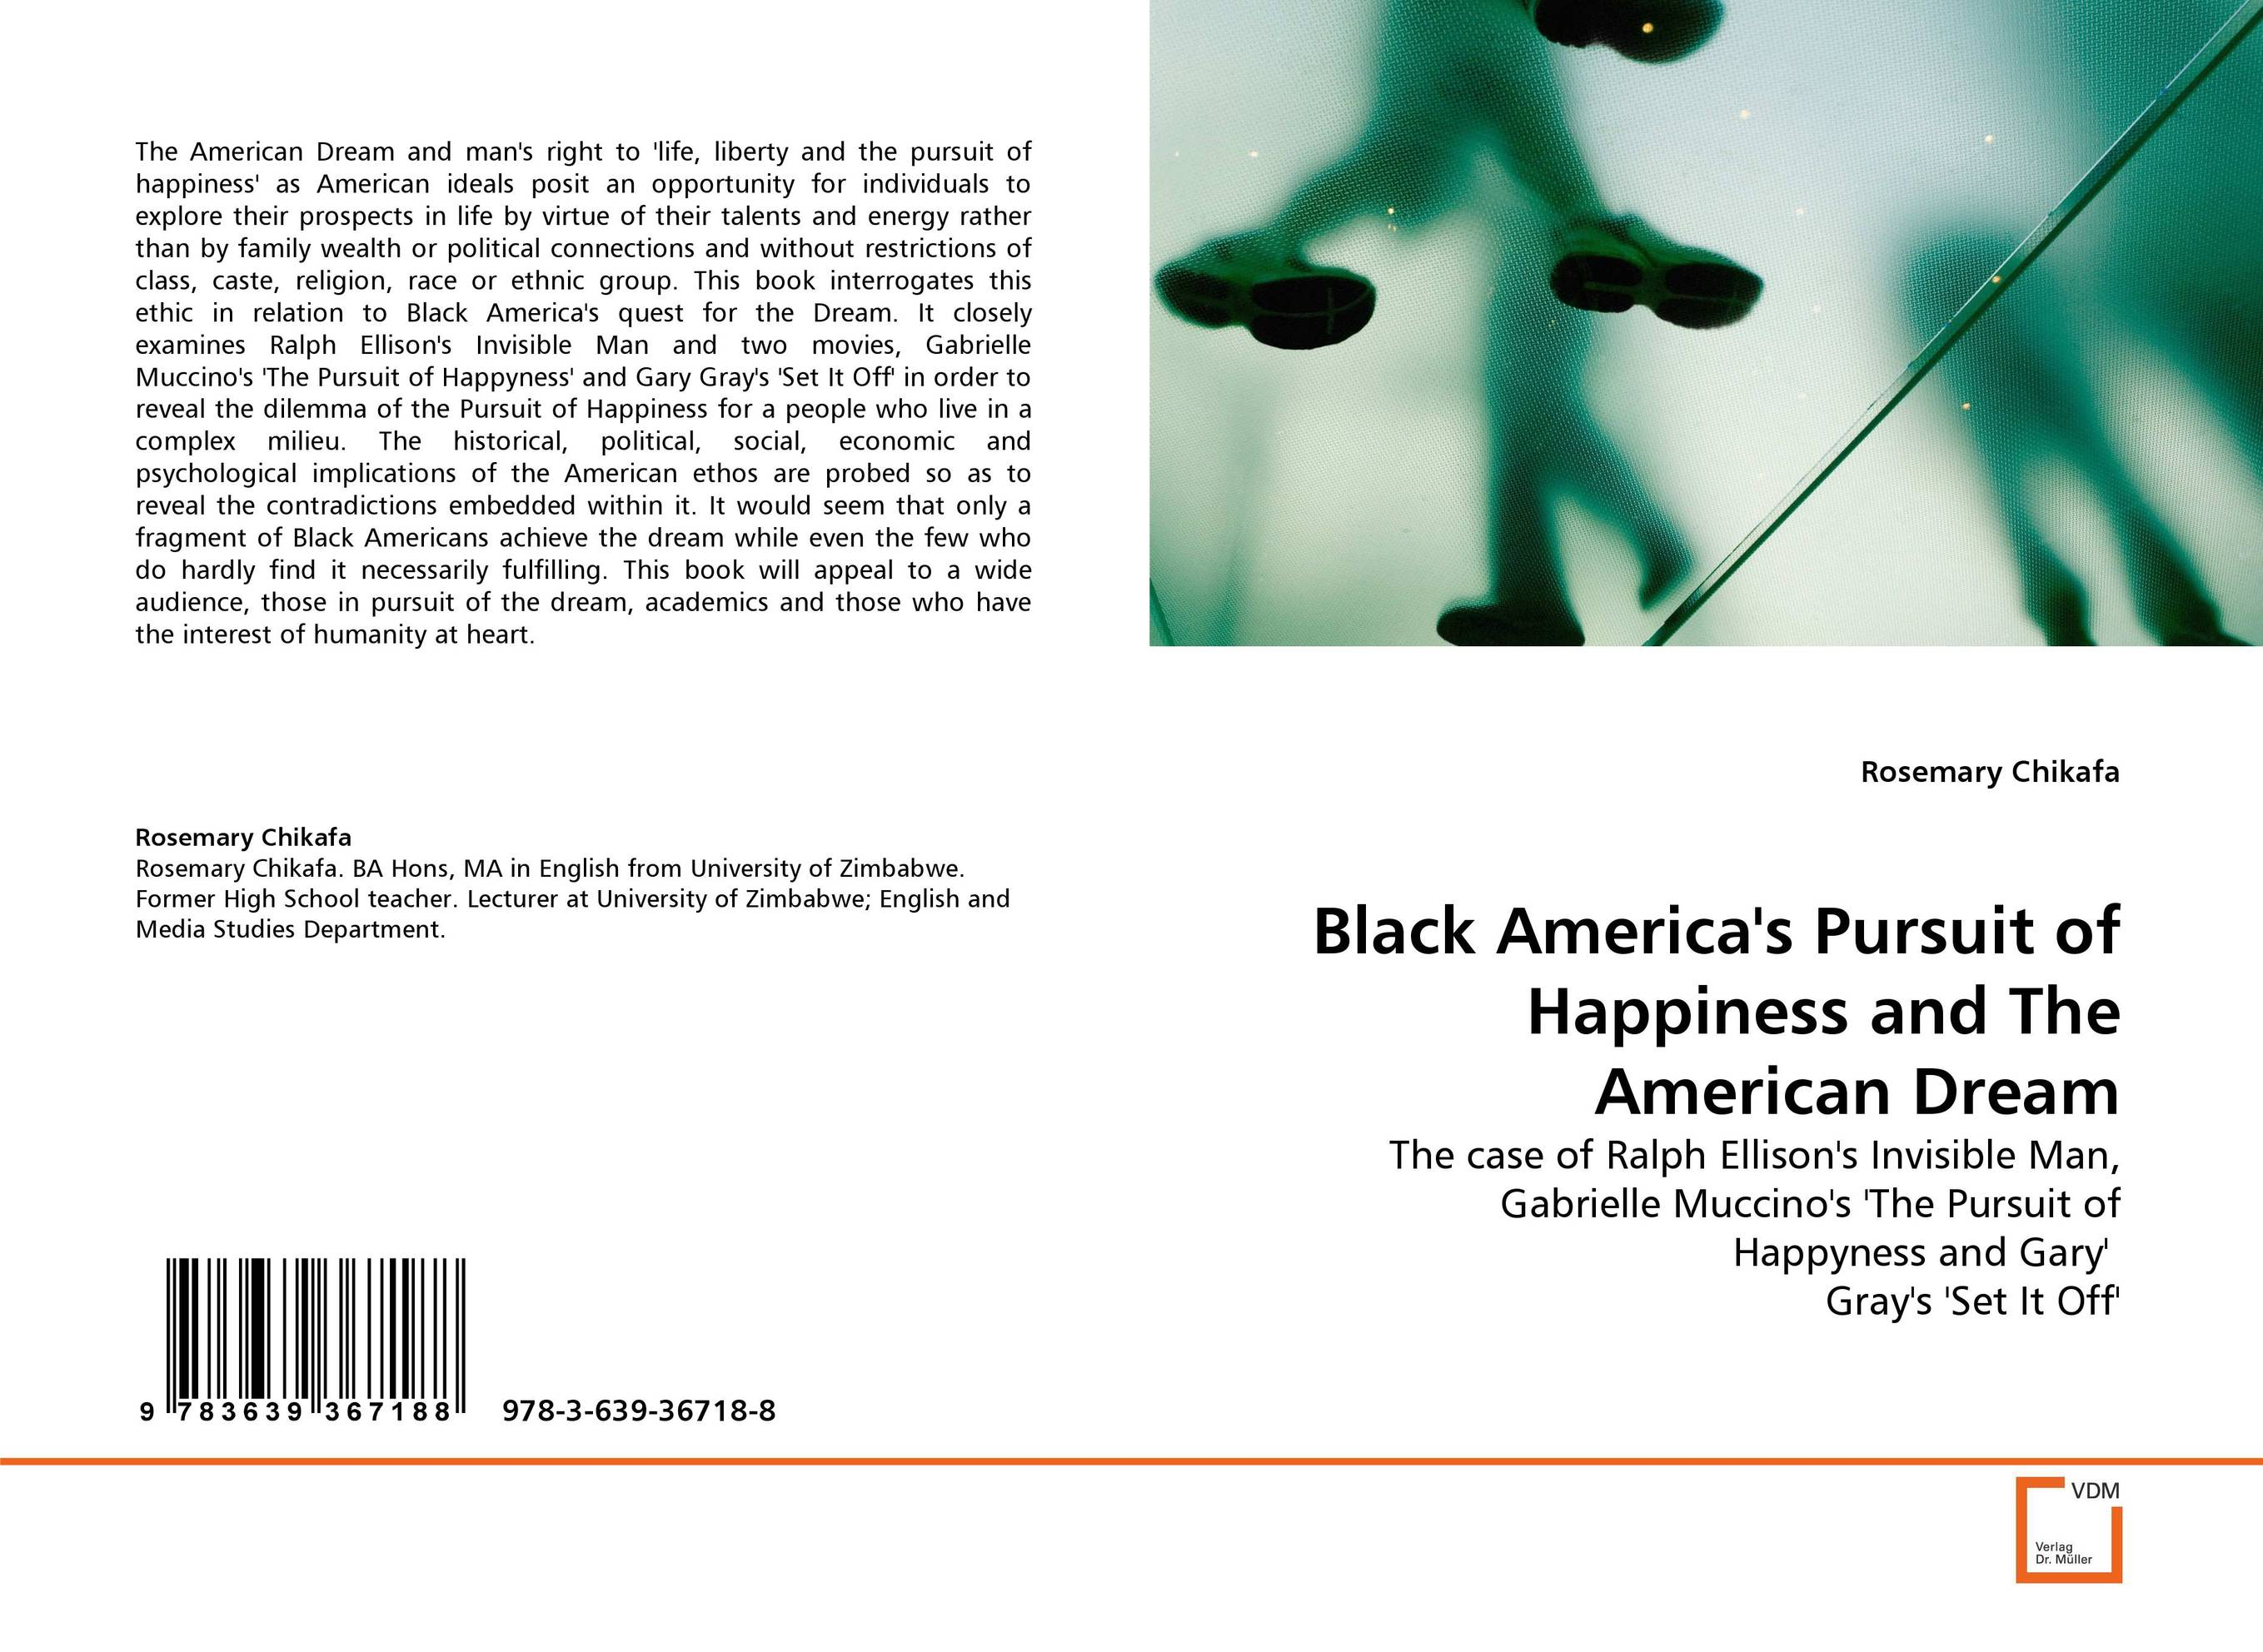 Black America''s Pursuit of Happiness and The American Dream dave melton hire the american dream